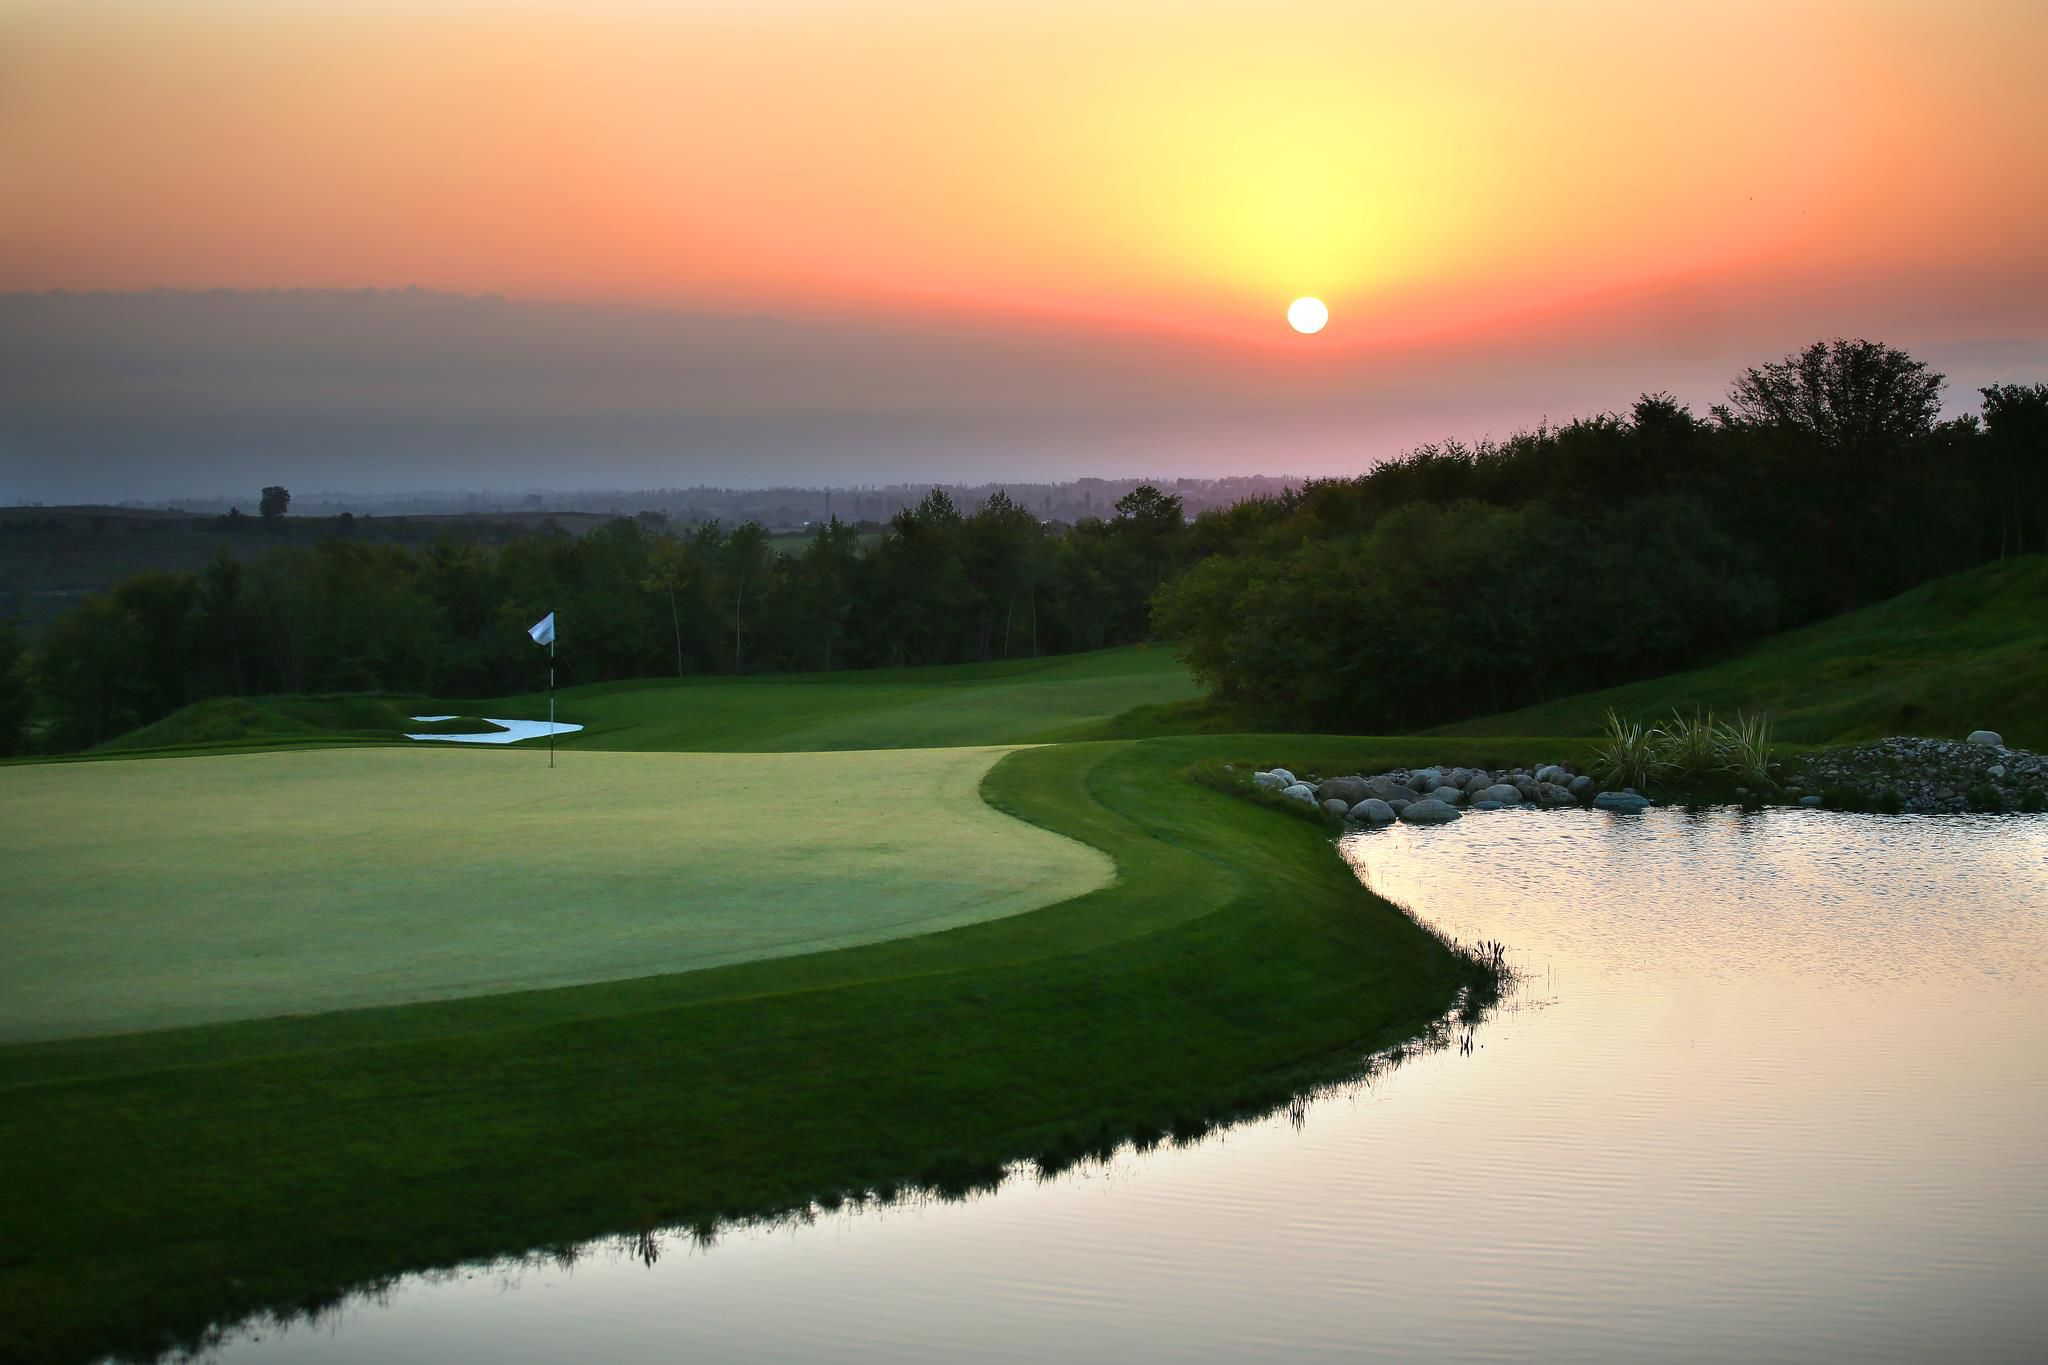 The National Golf Club Quba, Azerbaijan